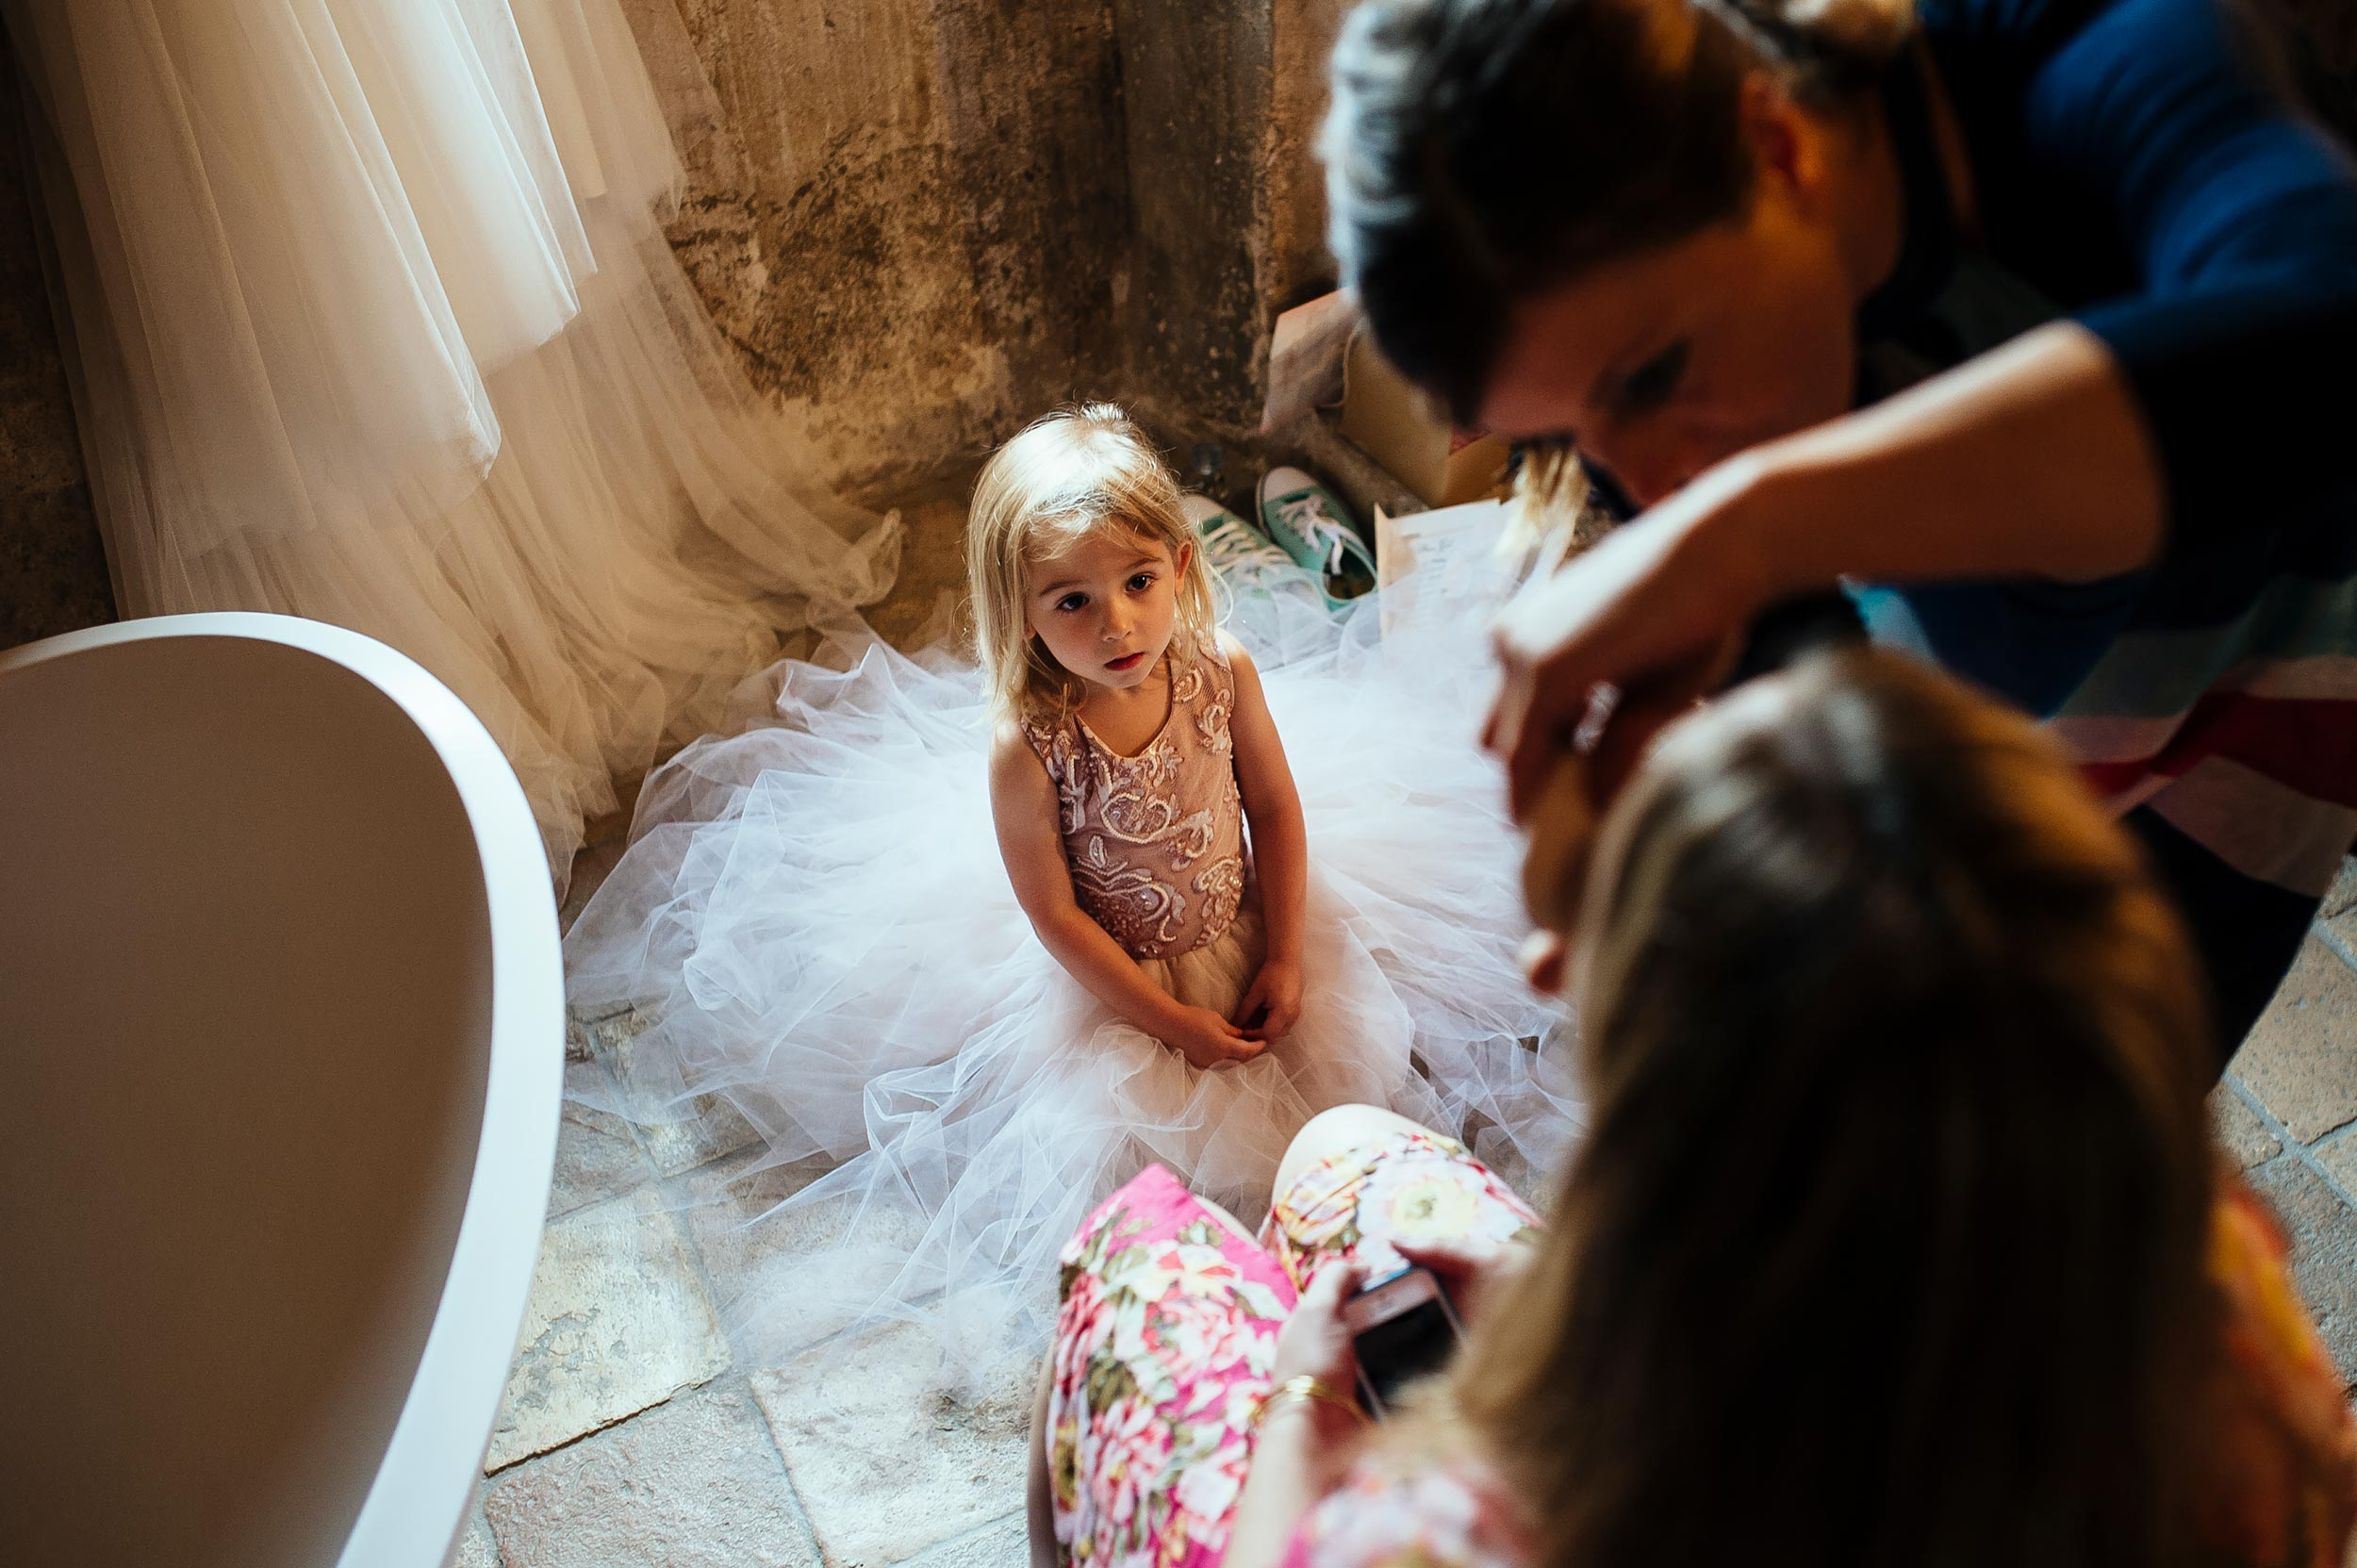 girl-looking-ad-the-bride-while-getting-ready-at-makeup-wedding-in-italy.jpg